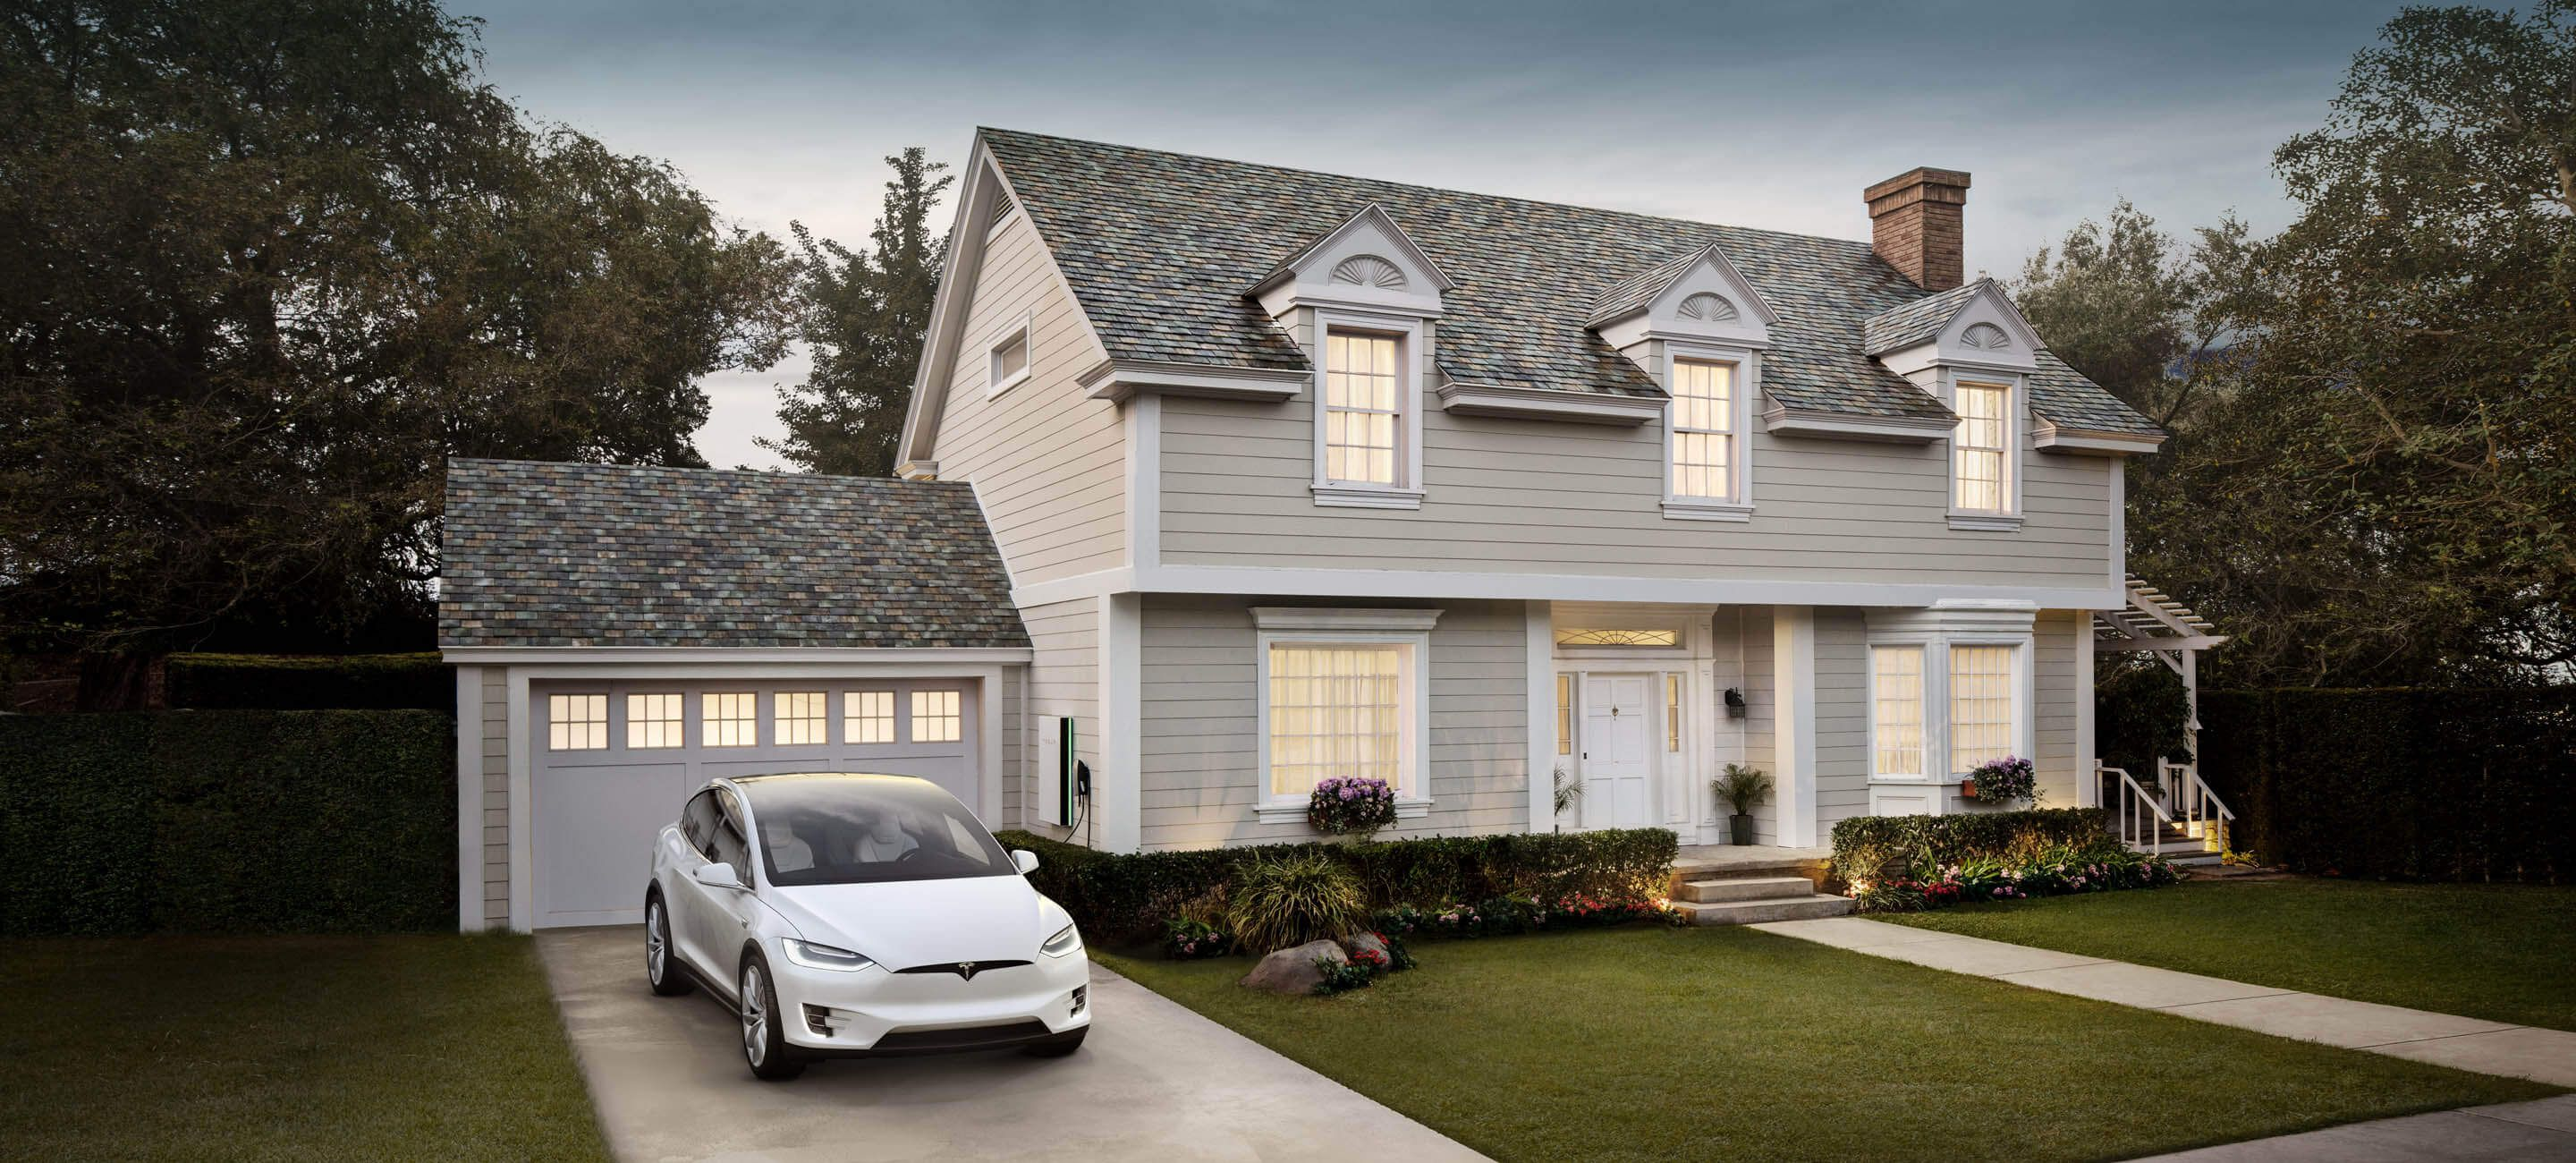 For Those That Have Been Following The Tesla Solar Roofing Tesla Announces Revamped Versions Of Its Solar Roof To H Solar Roof Solar Shingles Tesla Solar Roof